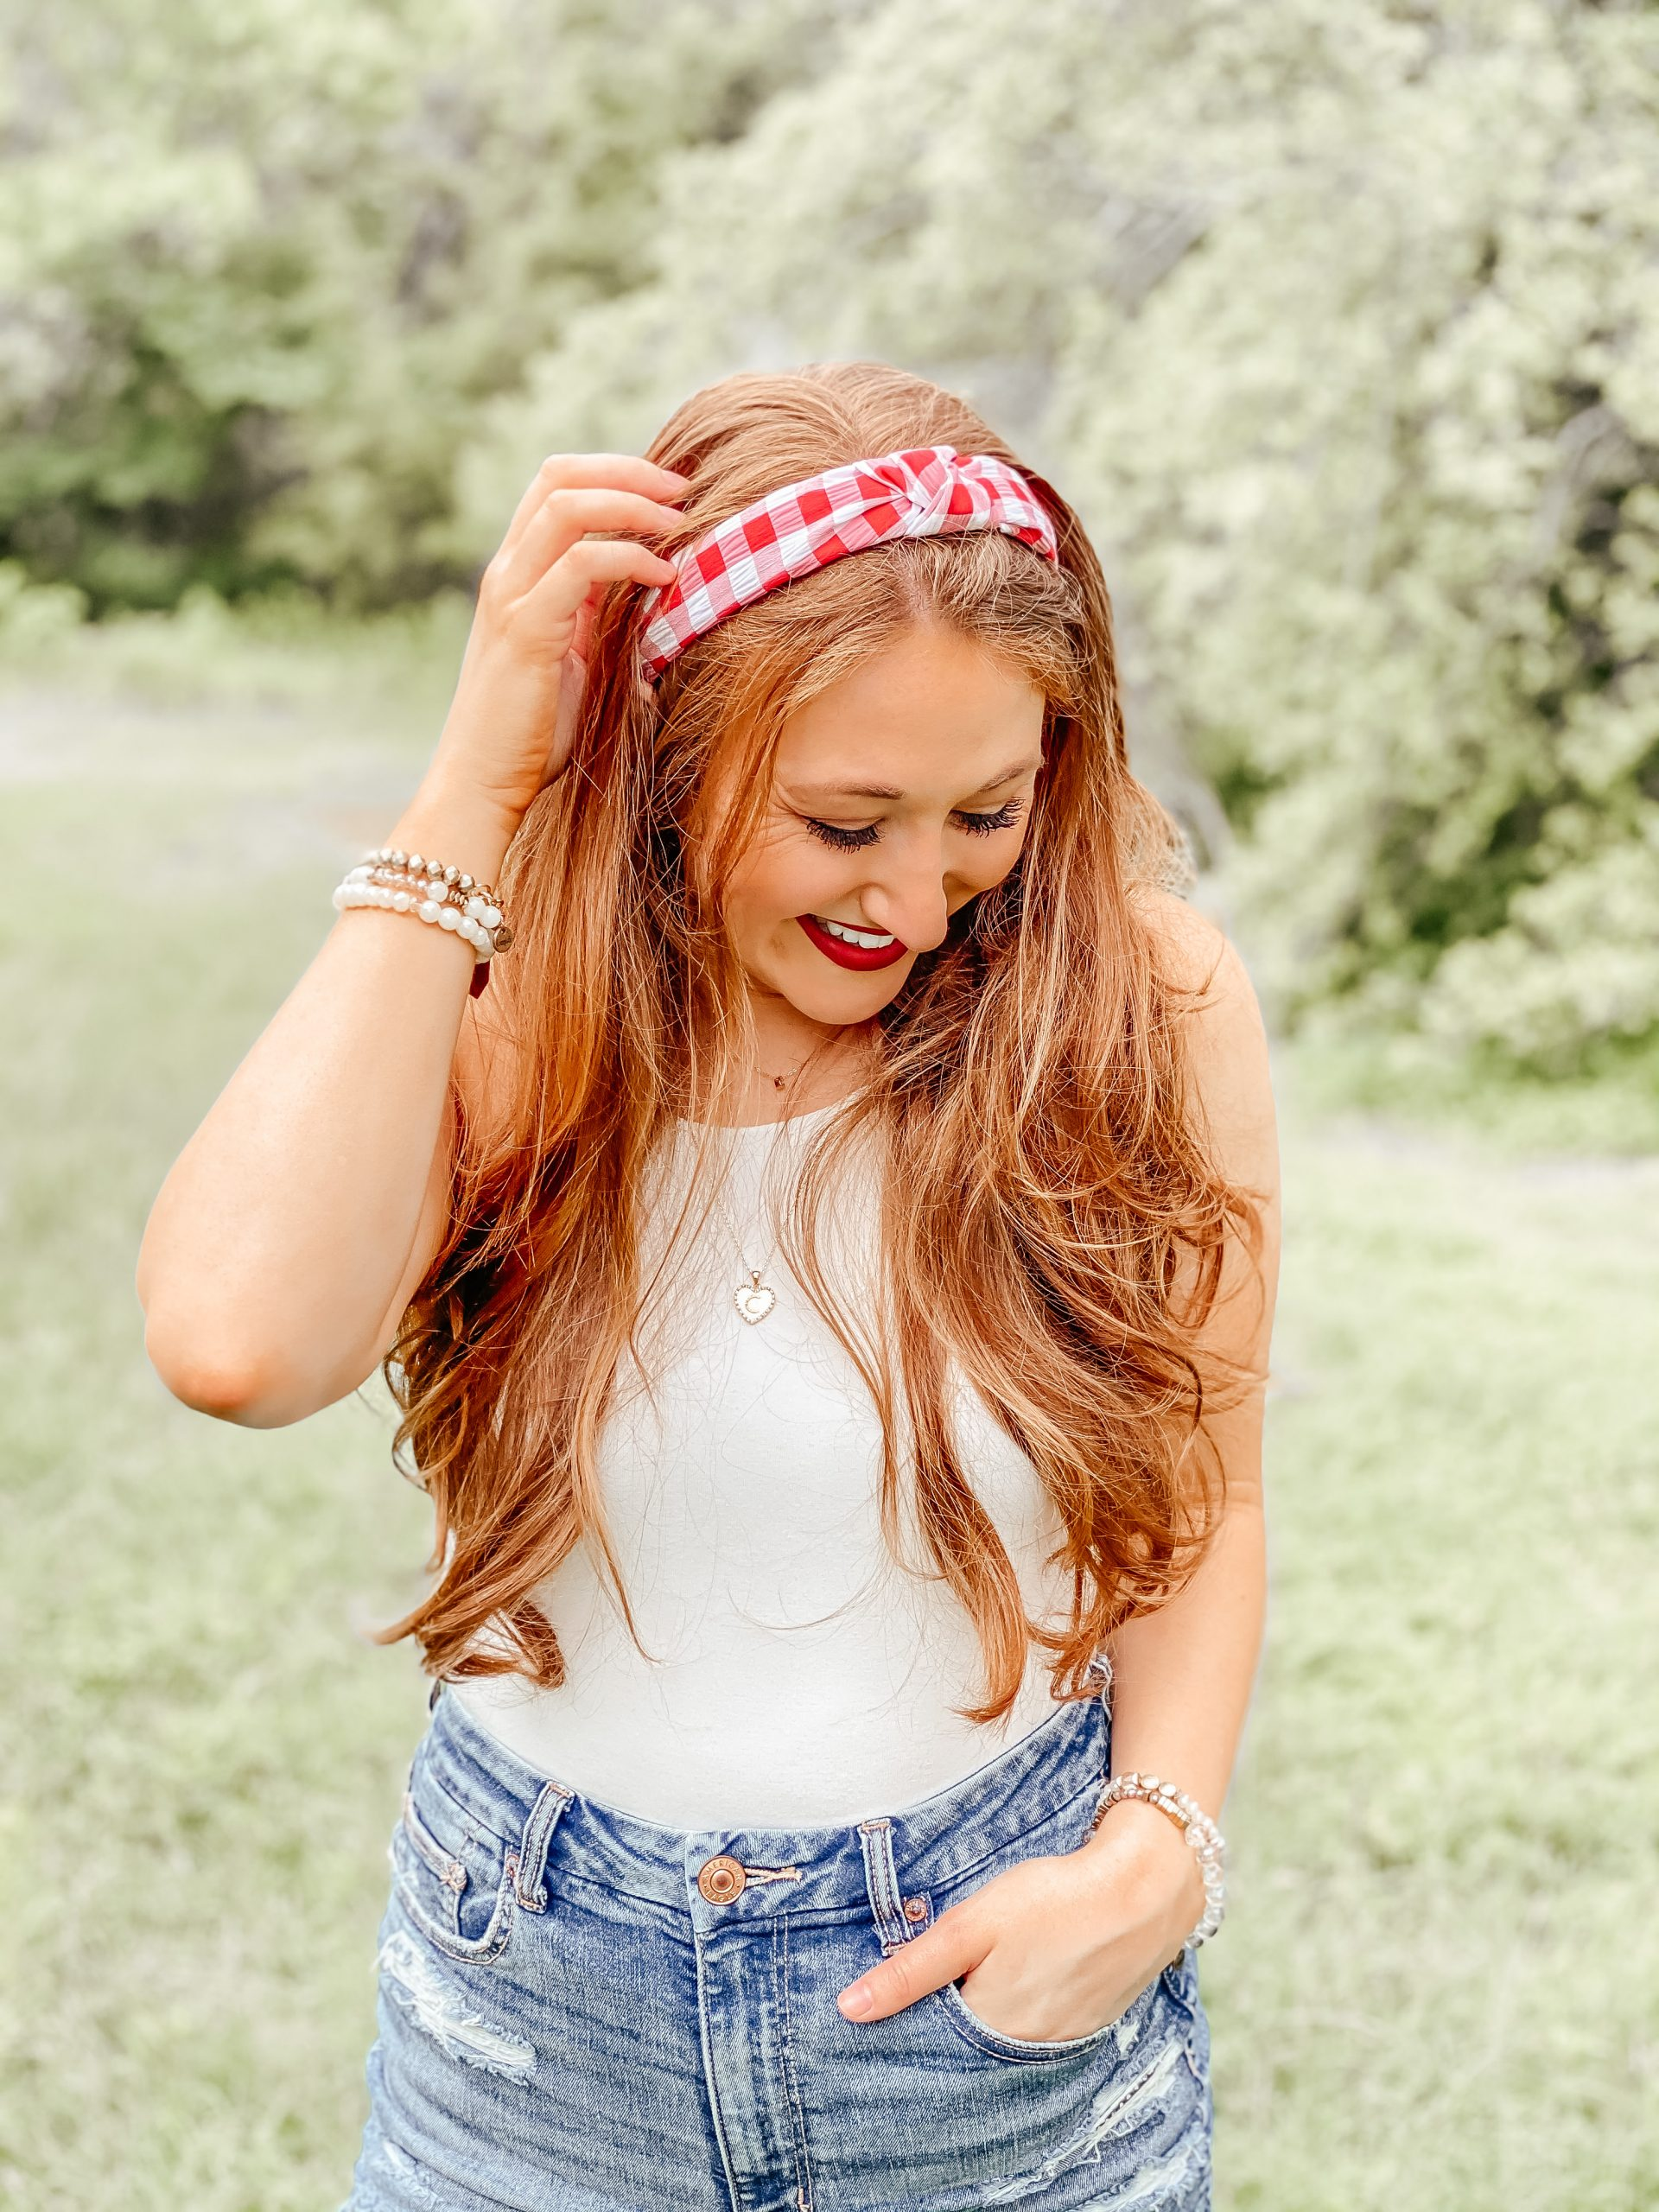 4th of July outfit looks with red, white and blue